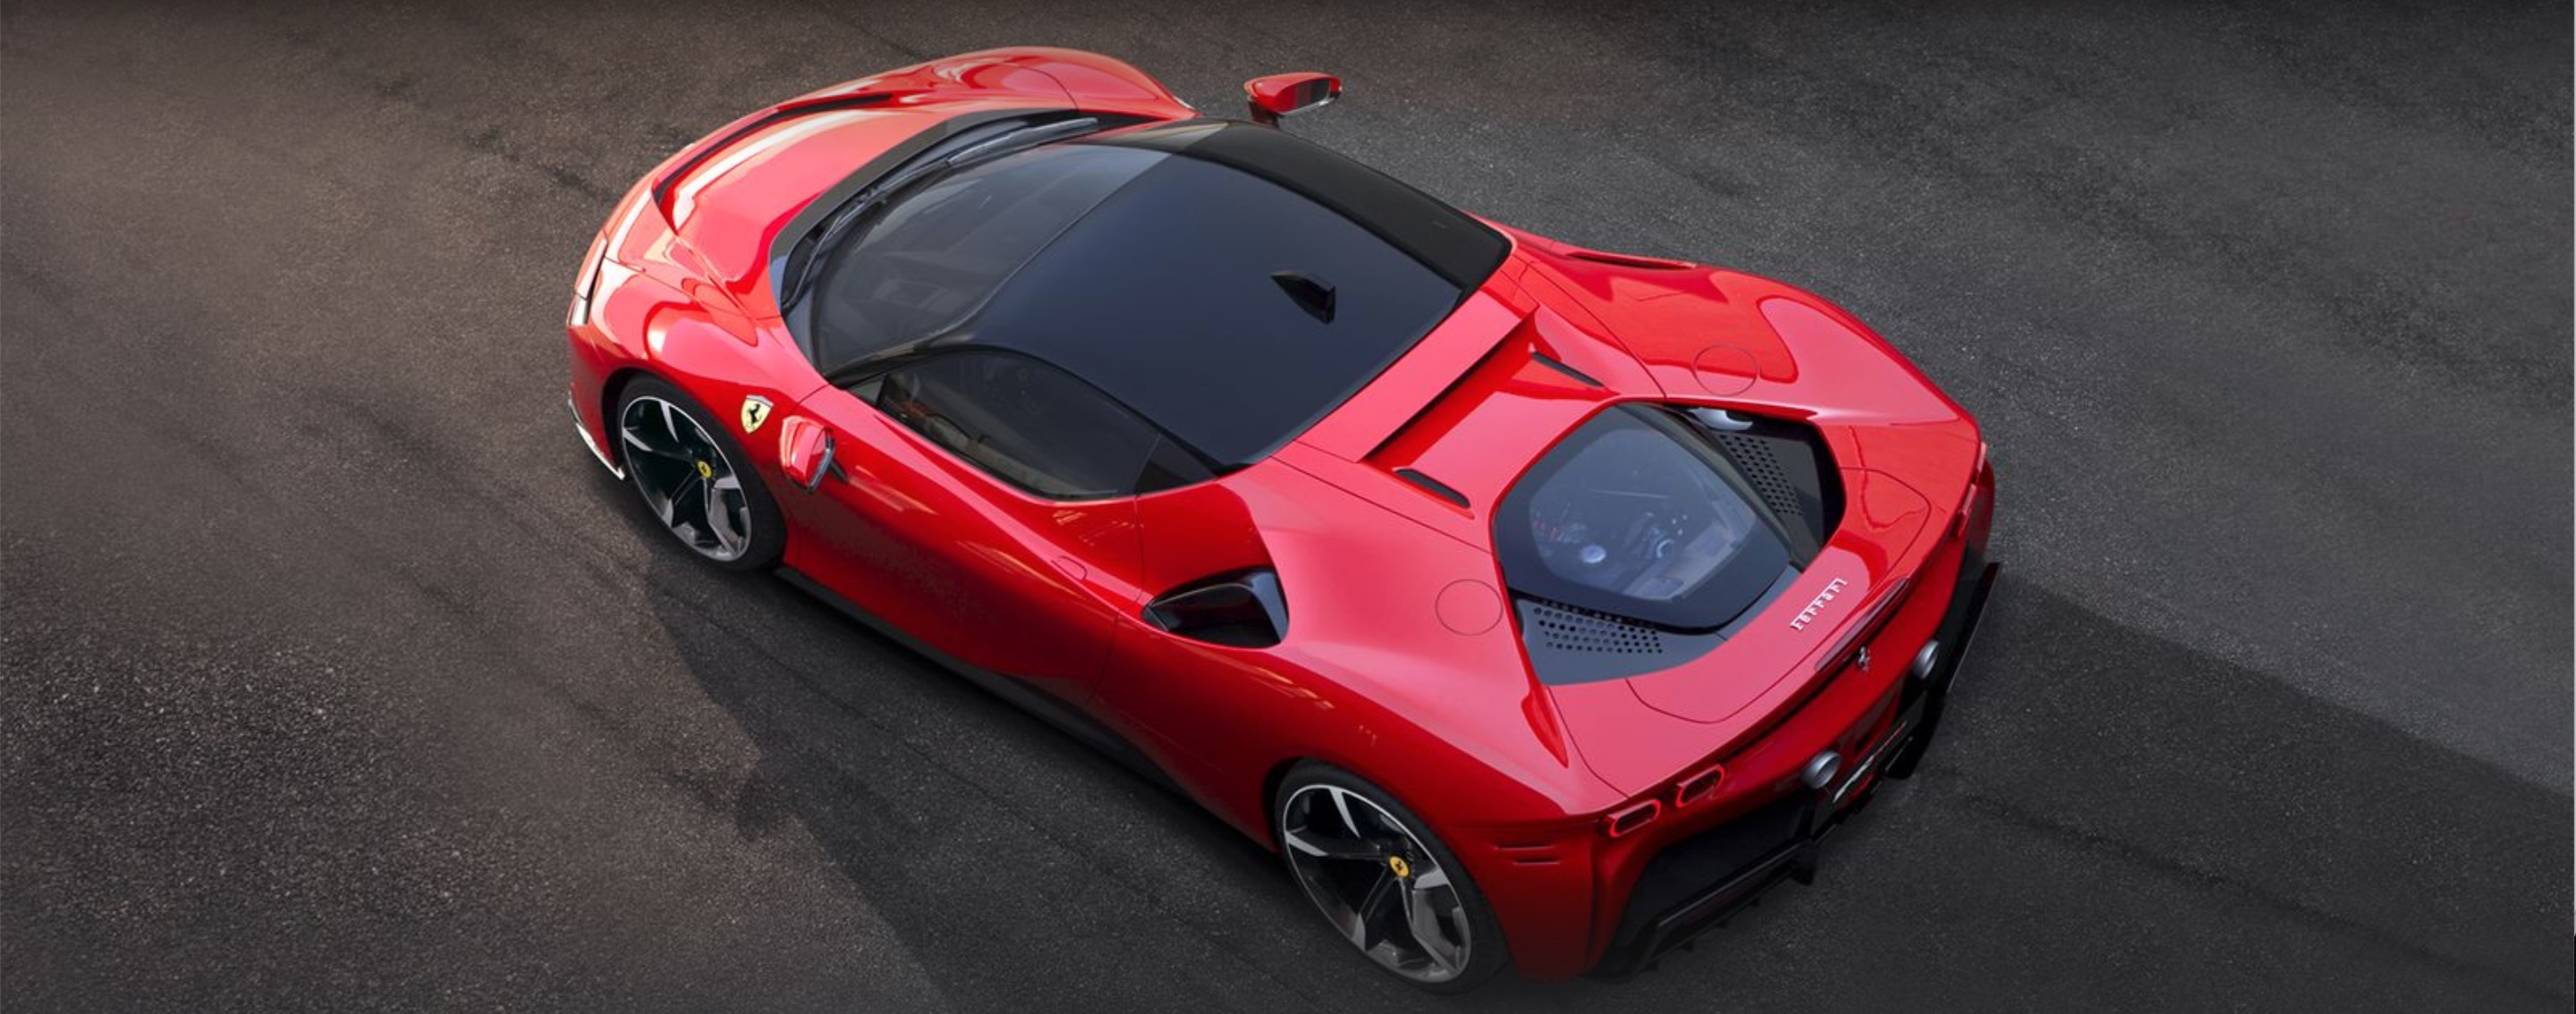 Ferrari, if it is still around, will go electric after 2025, says current CEO